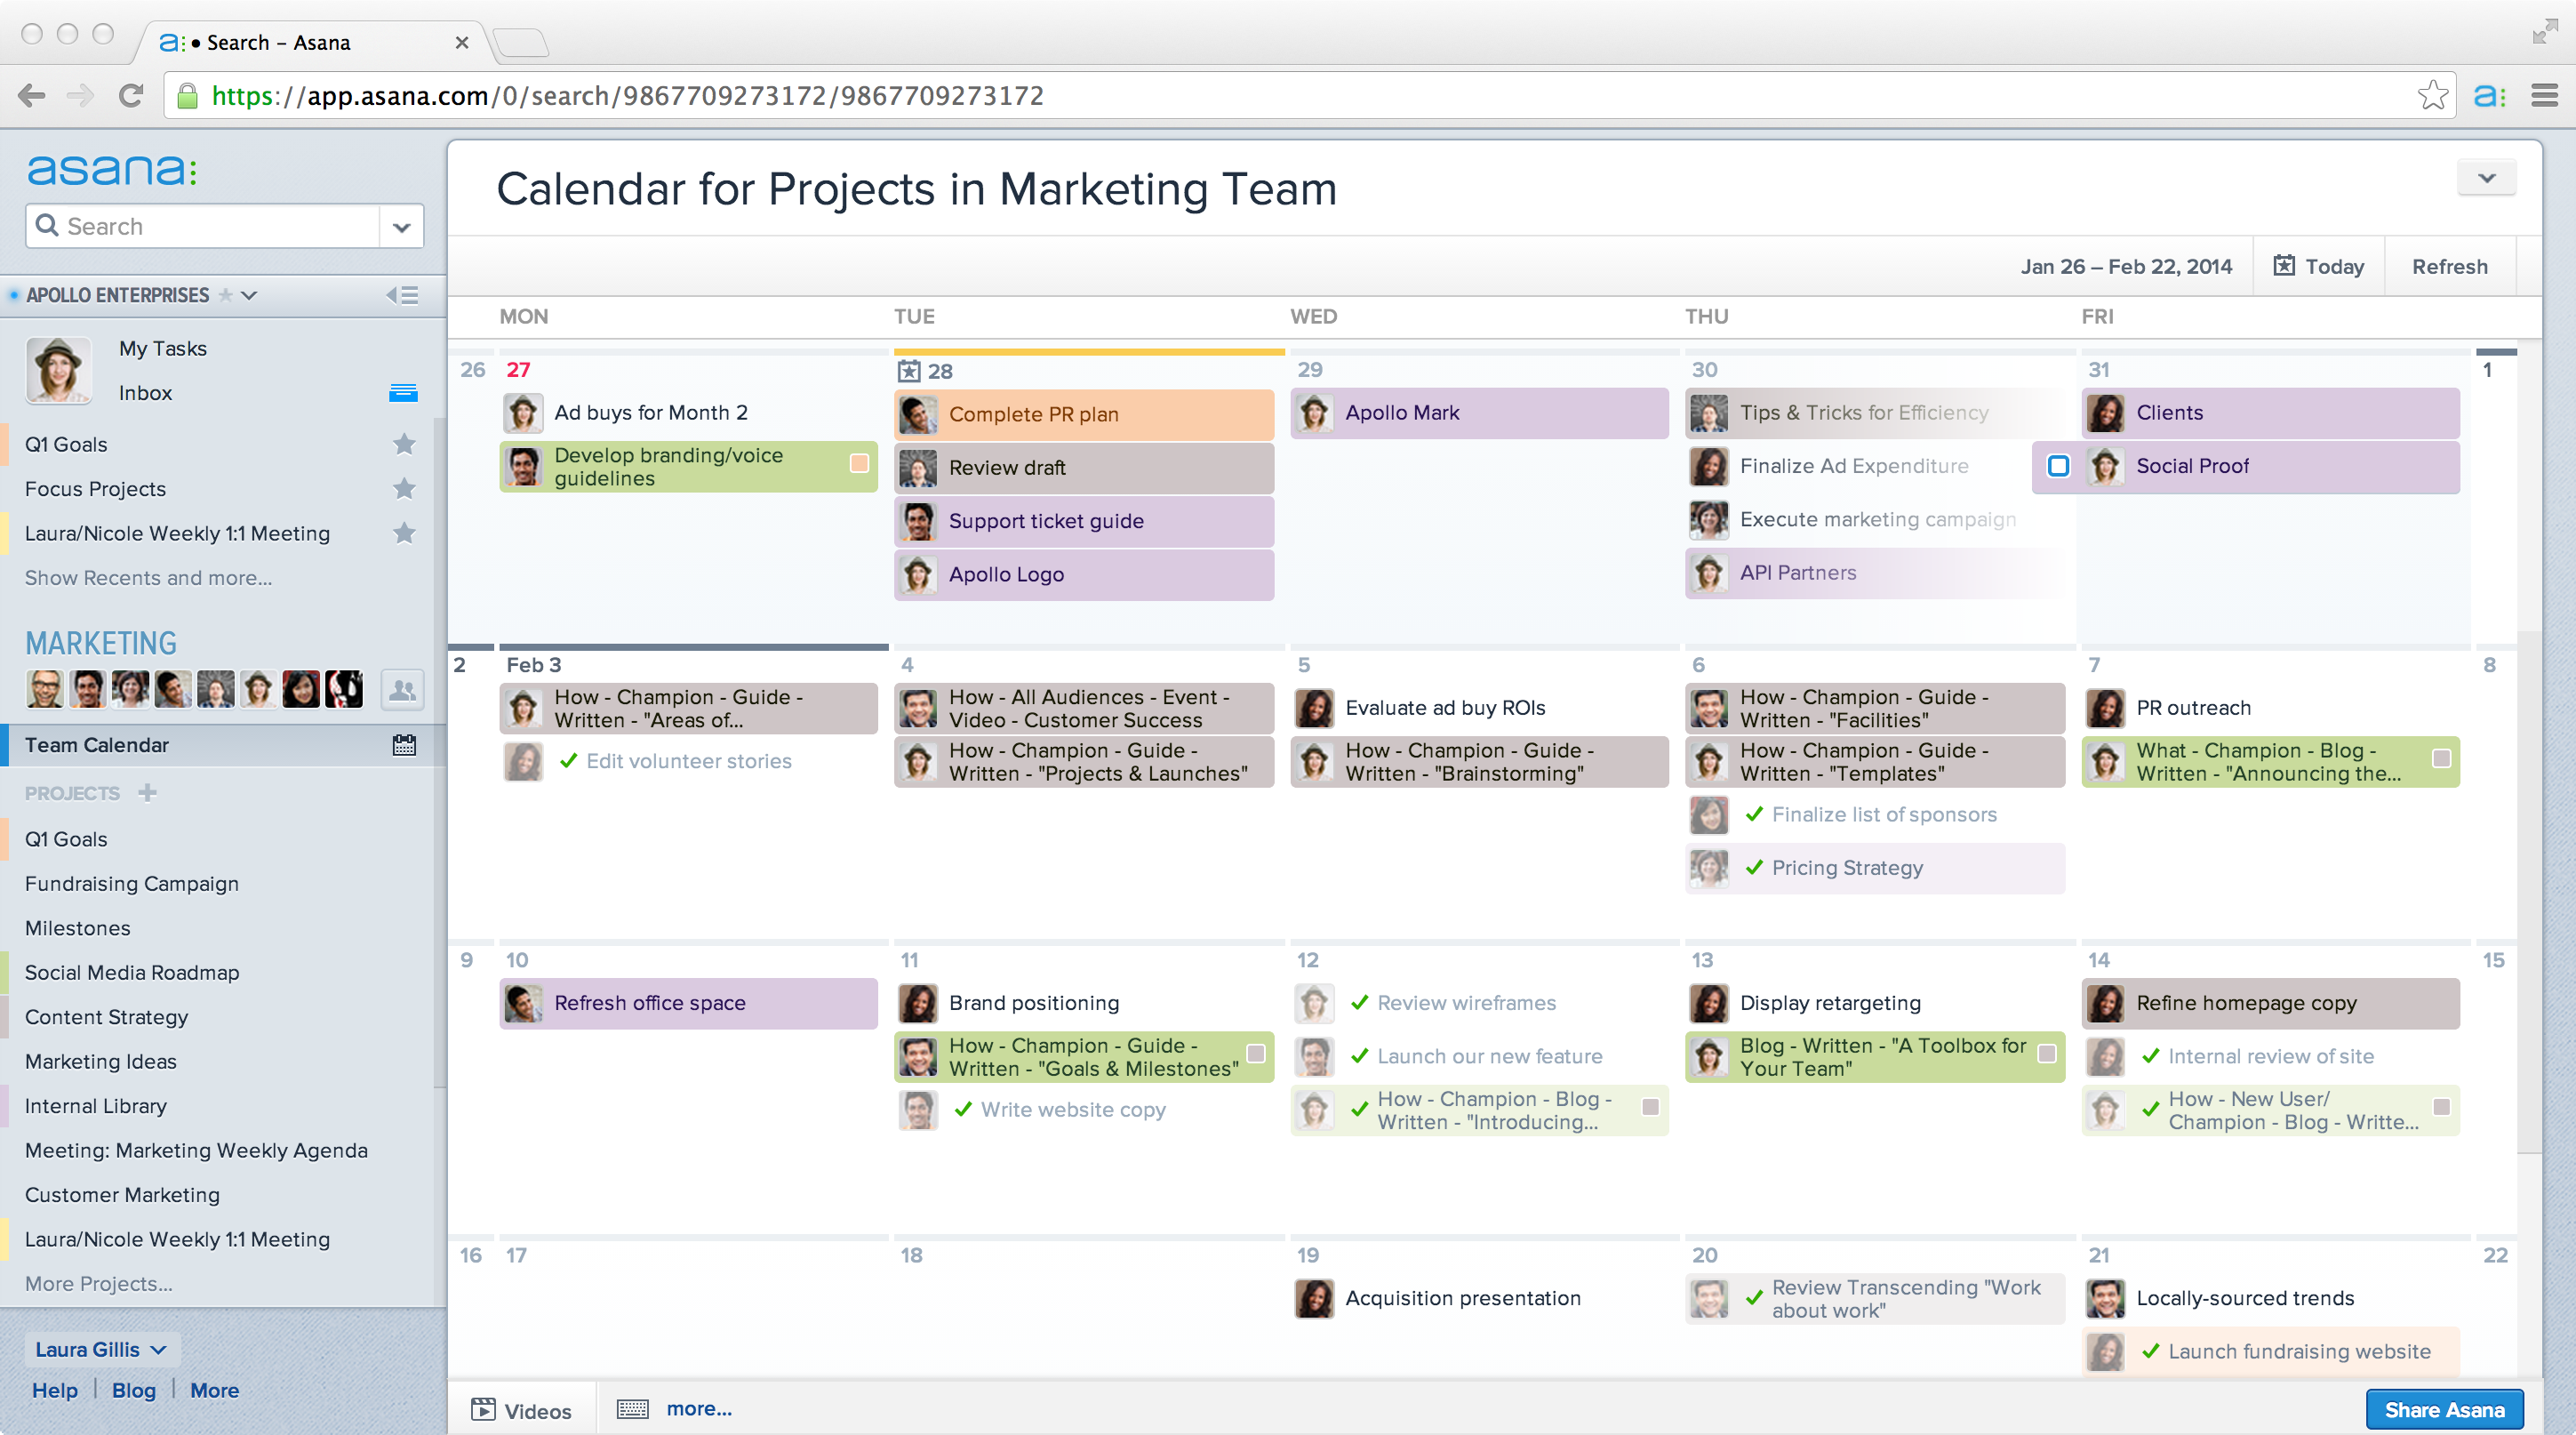 ... Unveils Calendars, A New Way To Visualize Project Deadlines And Tasks